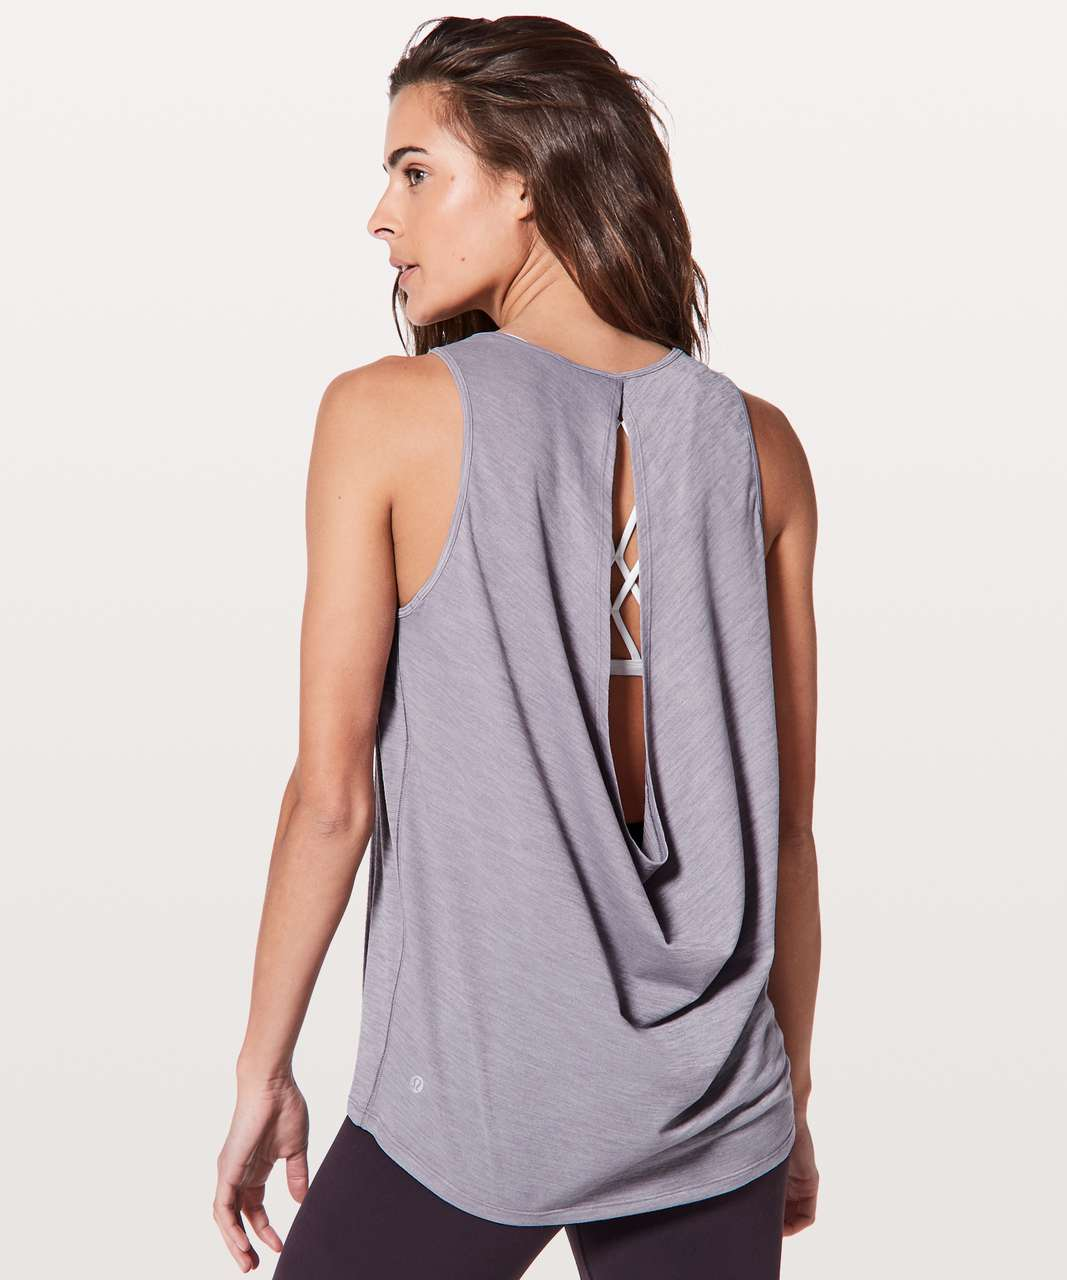 Lululemon Low Key Tank *Silver - Heathered Dusty Dawn